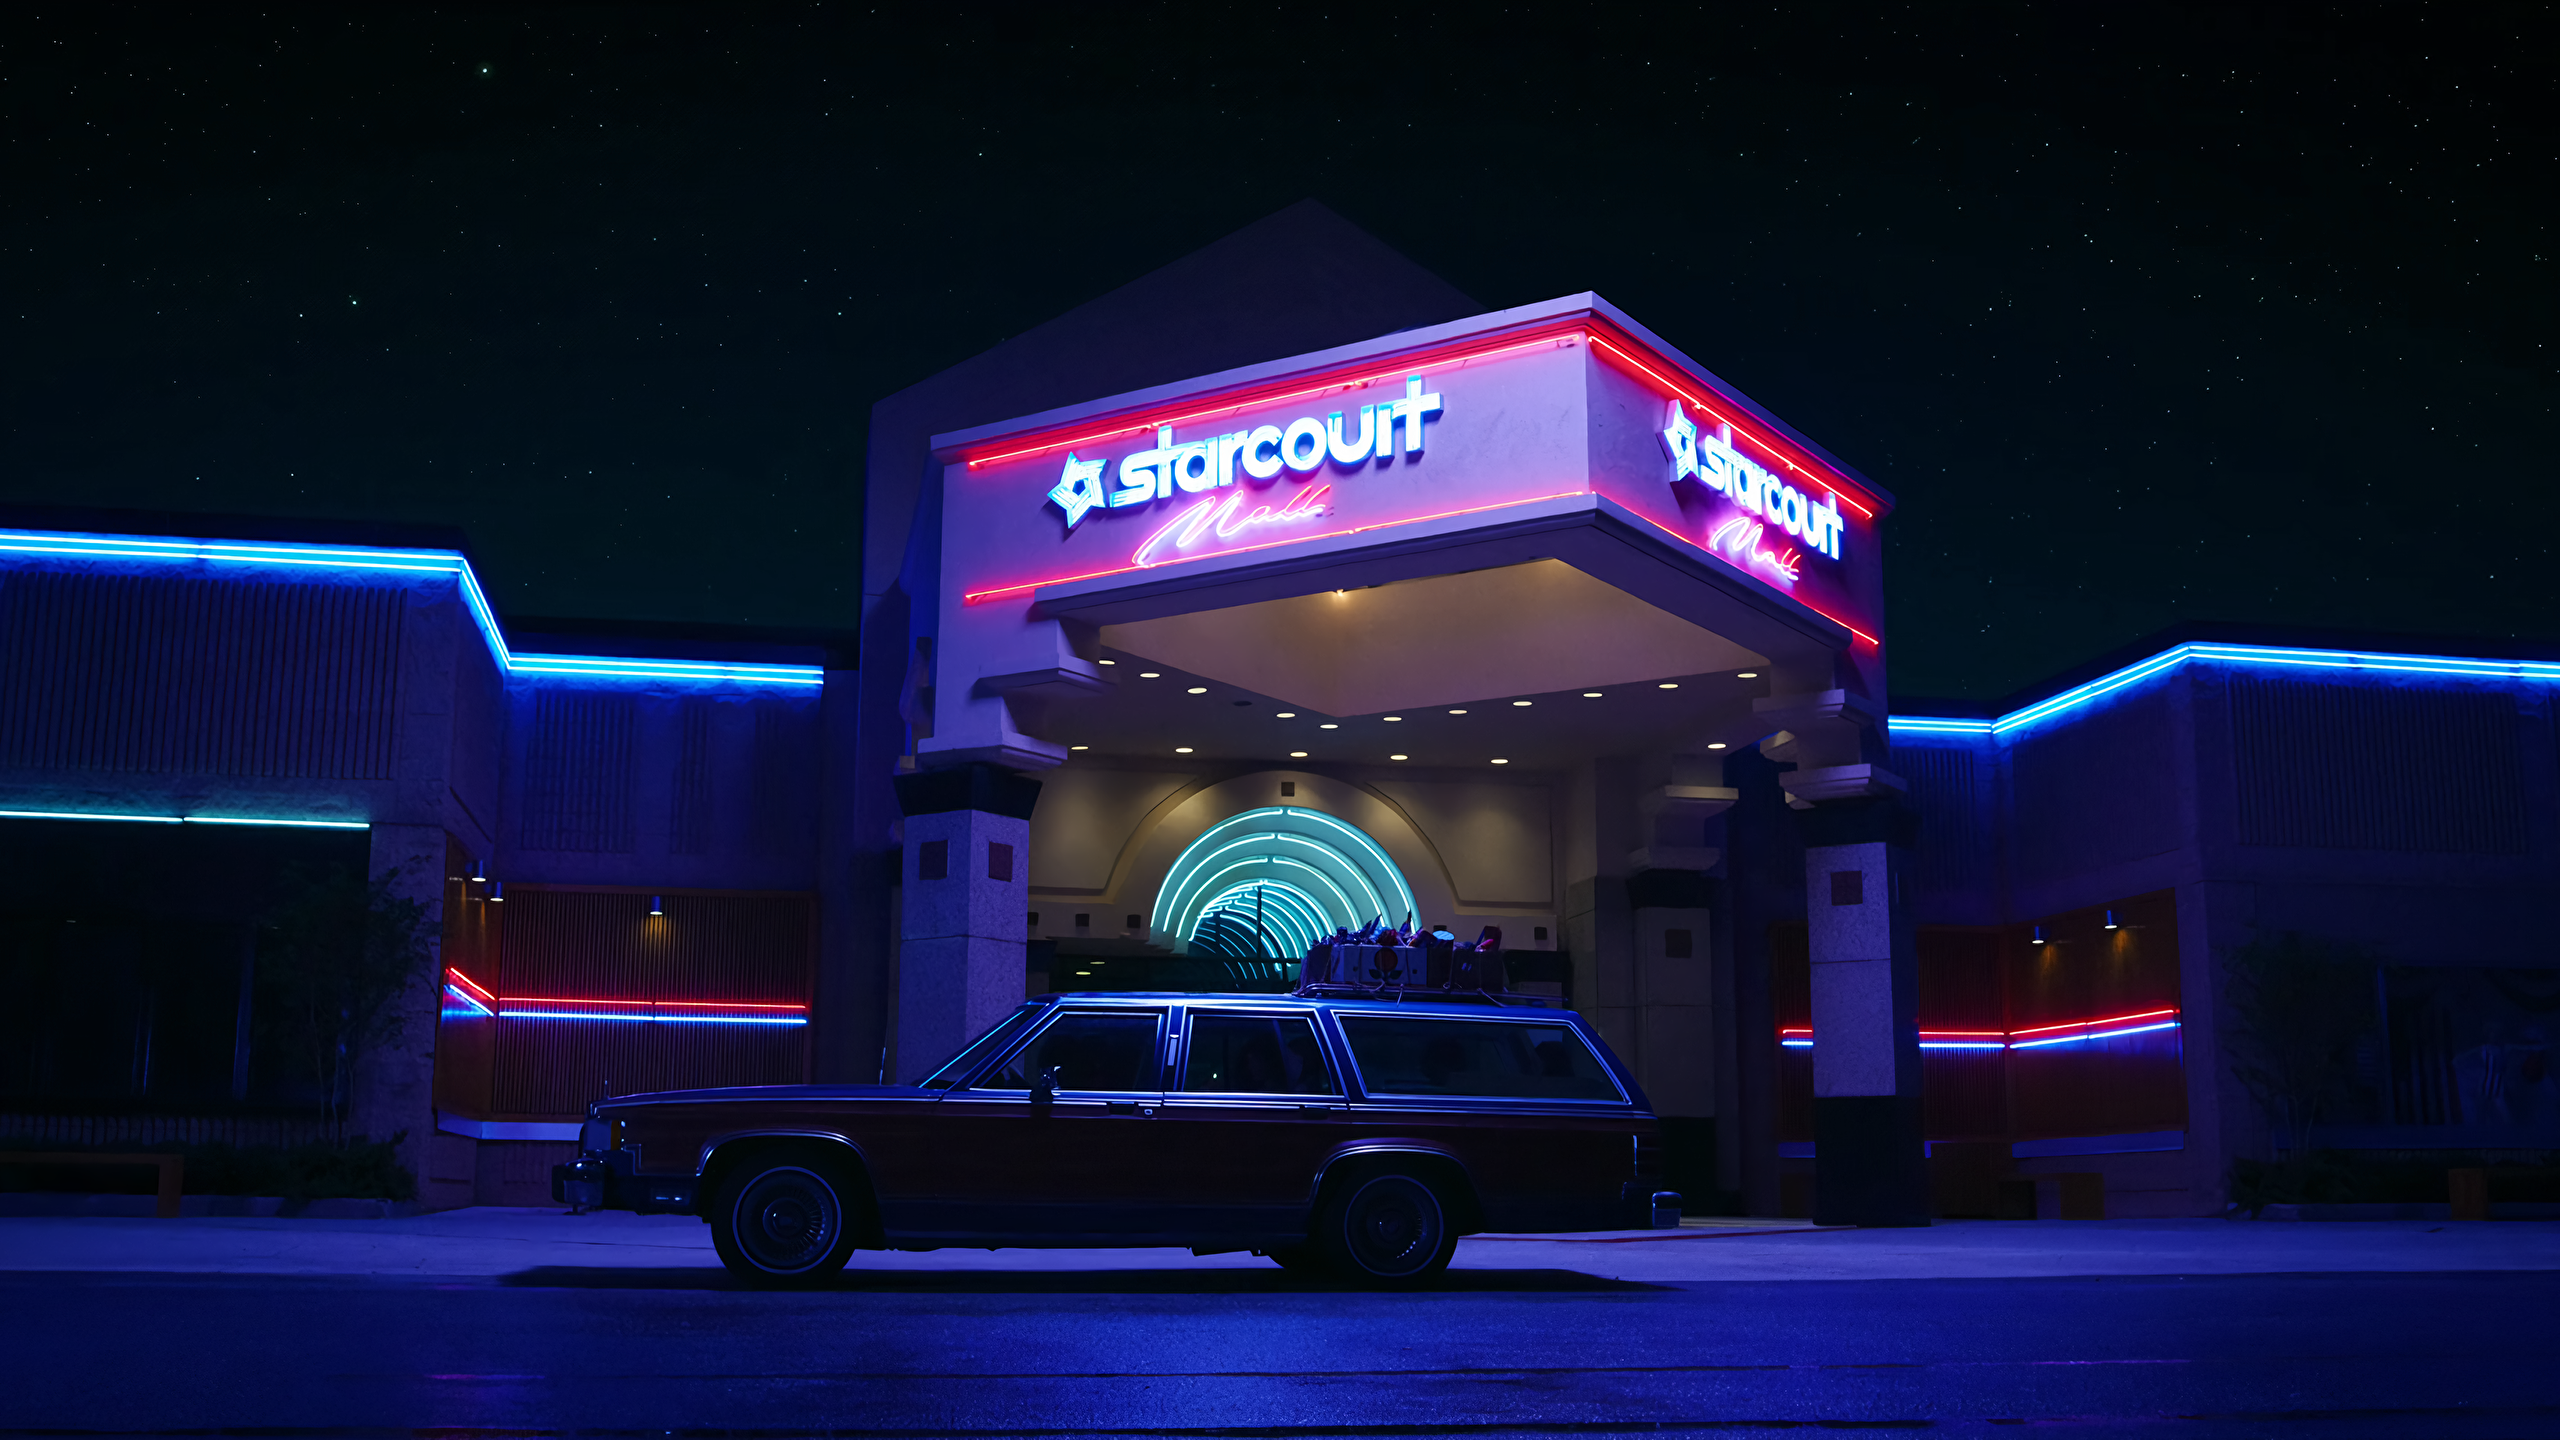 Starcourt Mall Stranger Things 3 3840x2160 Wallpapers